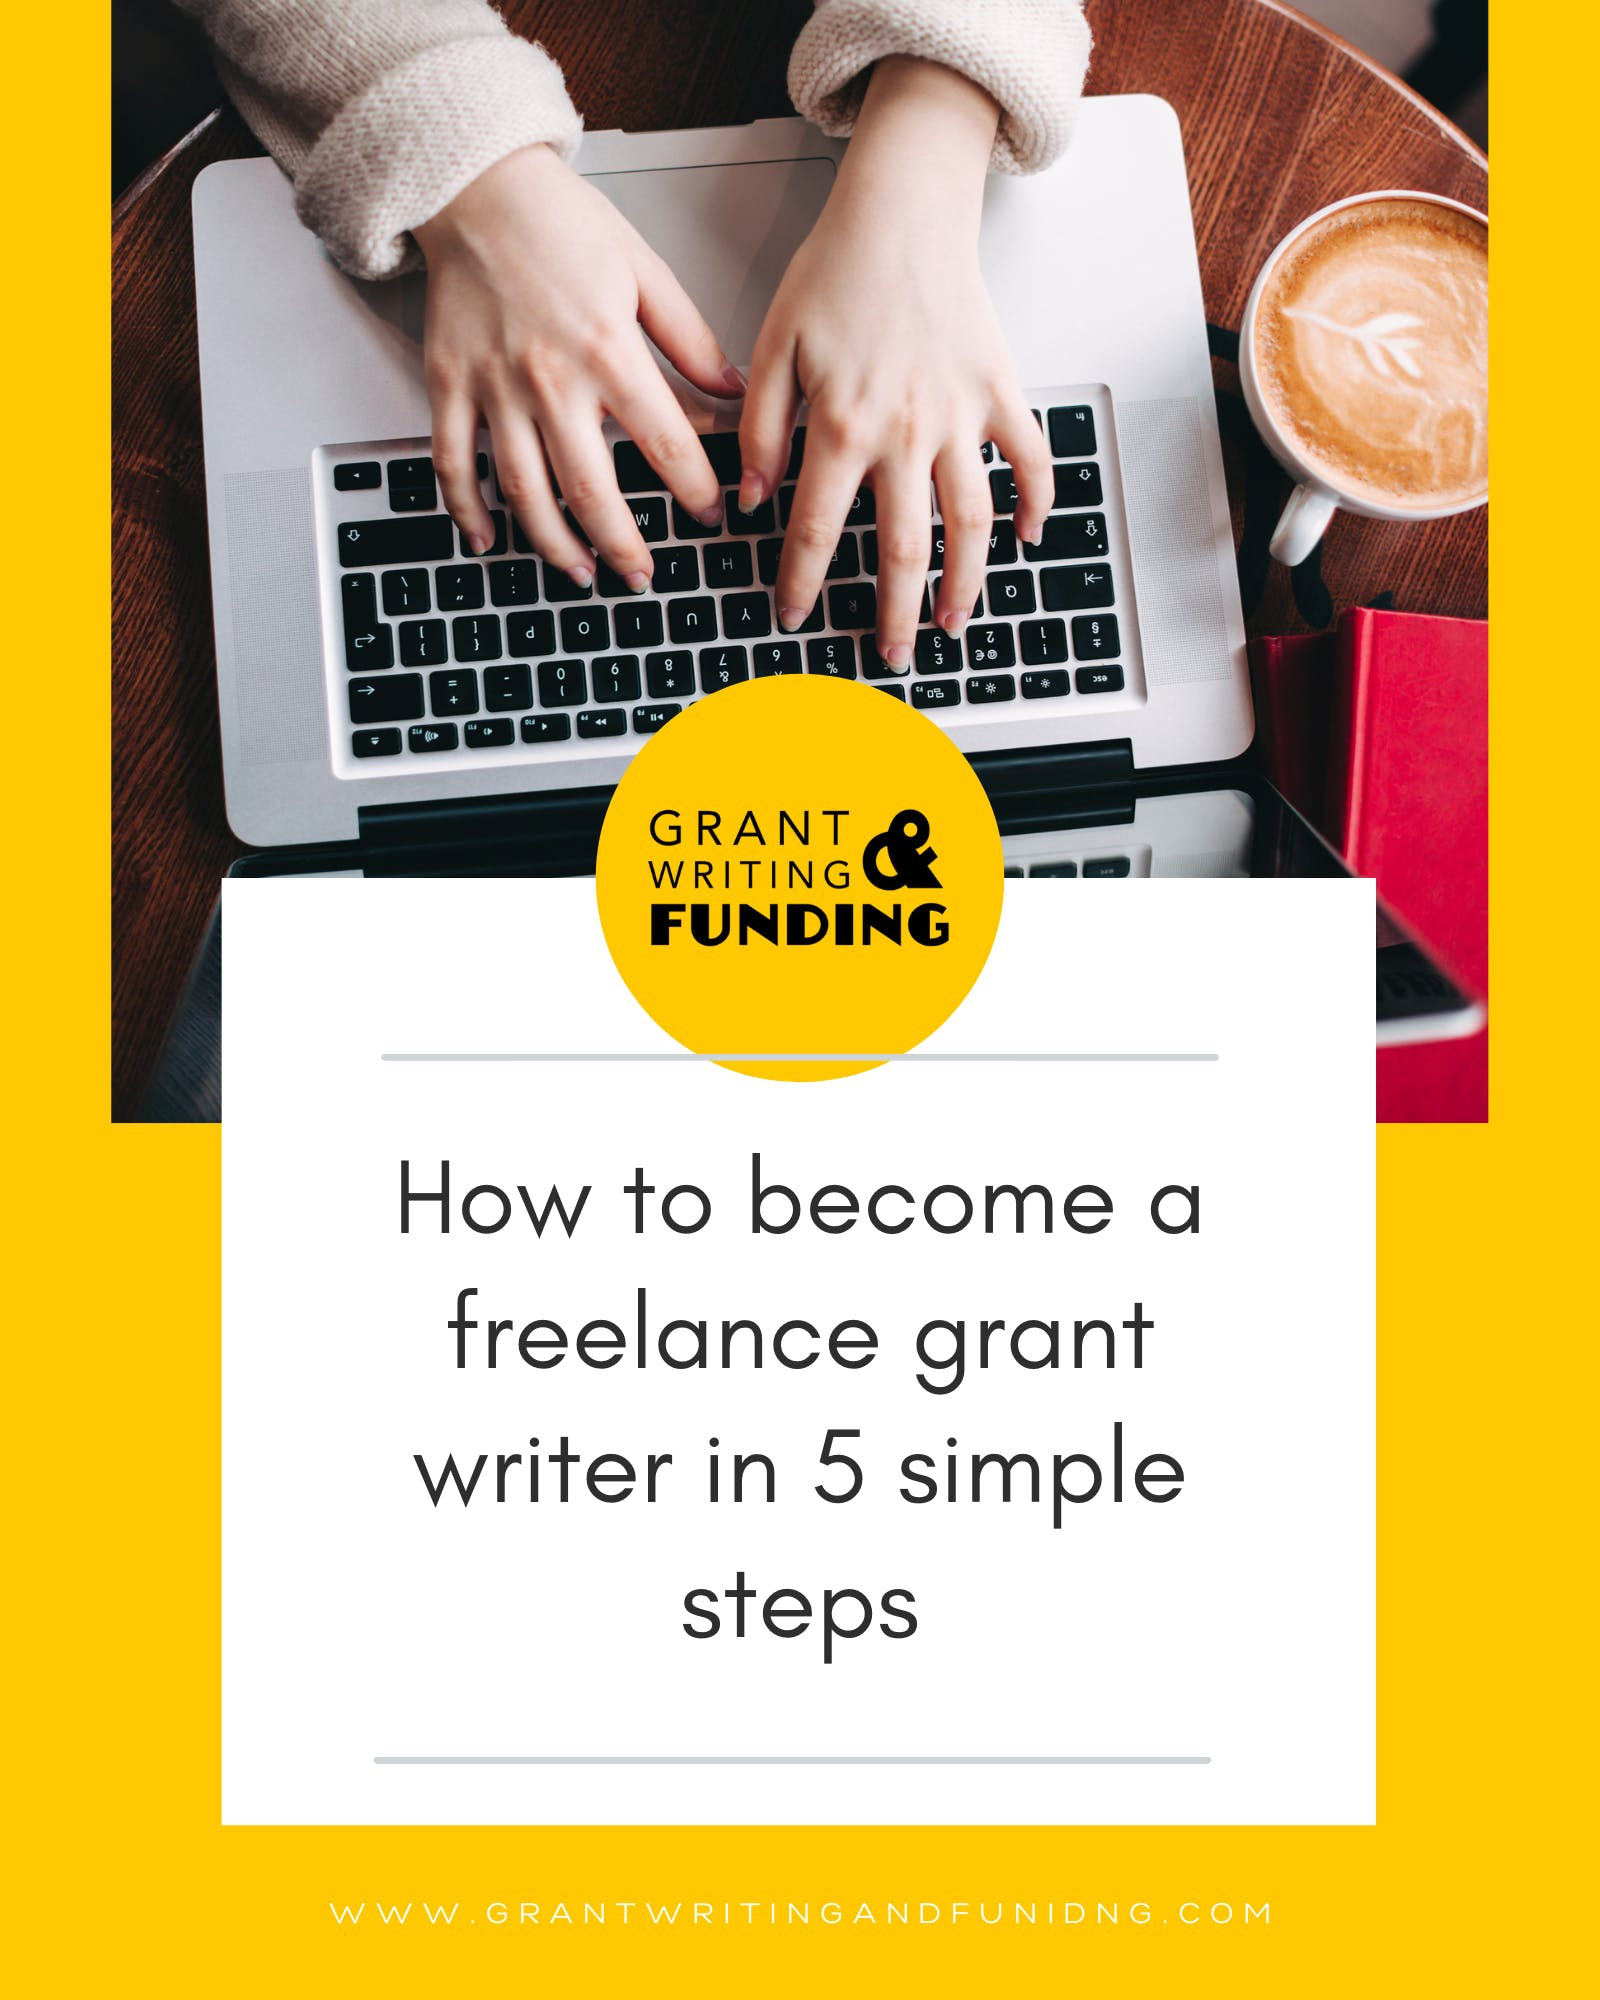 Free Checklist: How to Become a Freelance Grant Writer